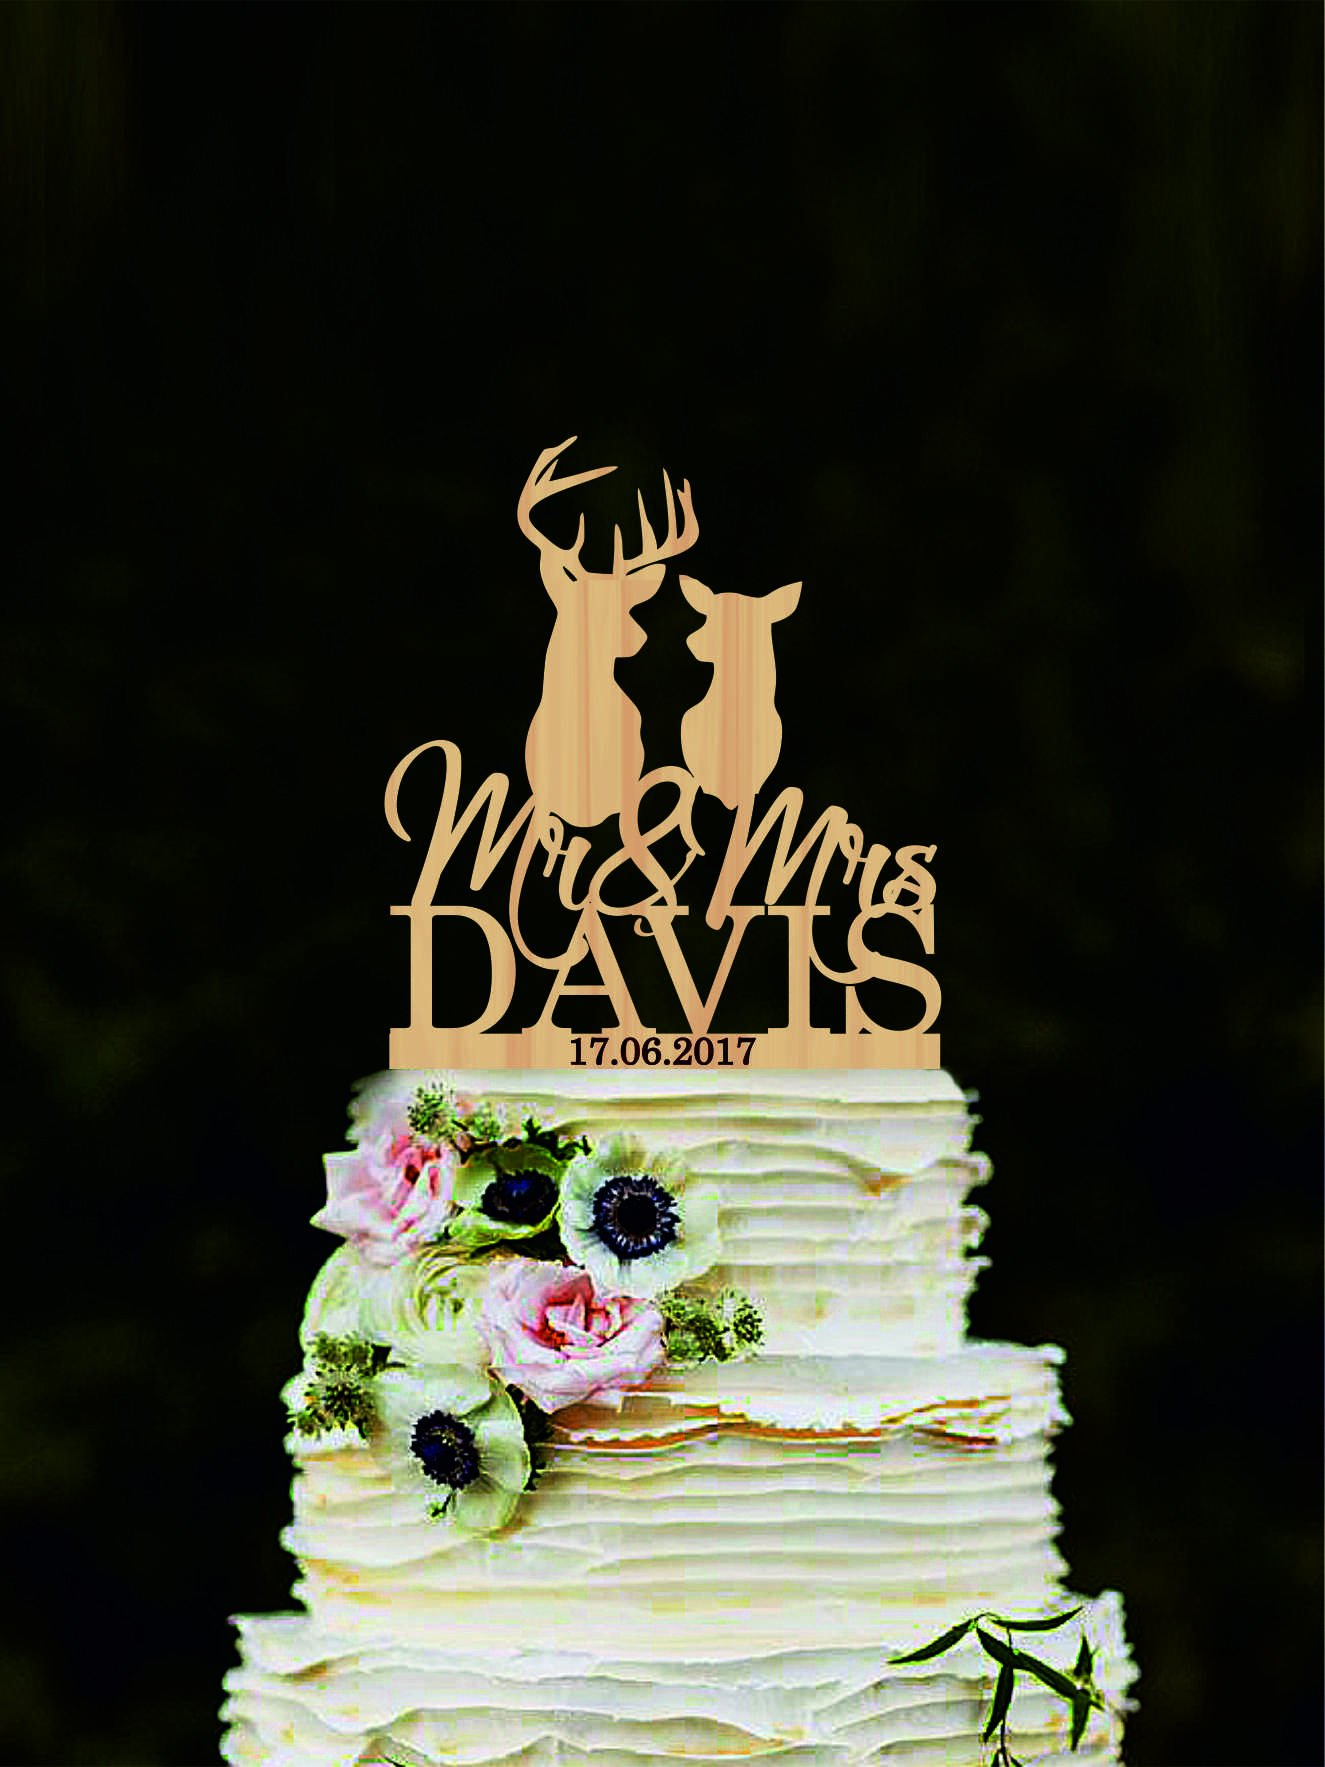 Custom Deer Cake Topper, Mr And Mrs Name Wedding Cake Topper, Hunting Cake Topper, Silhouette Doe And Buck Cake Topper, The Hunt Is Over